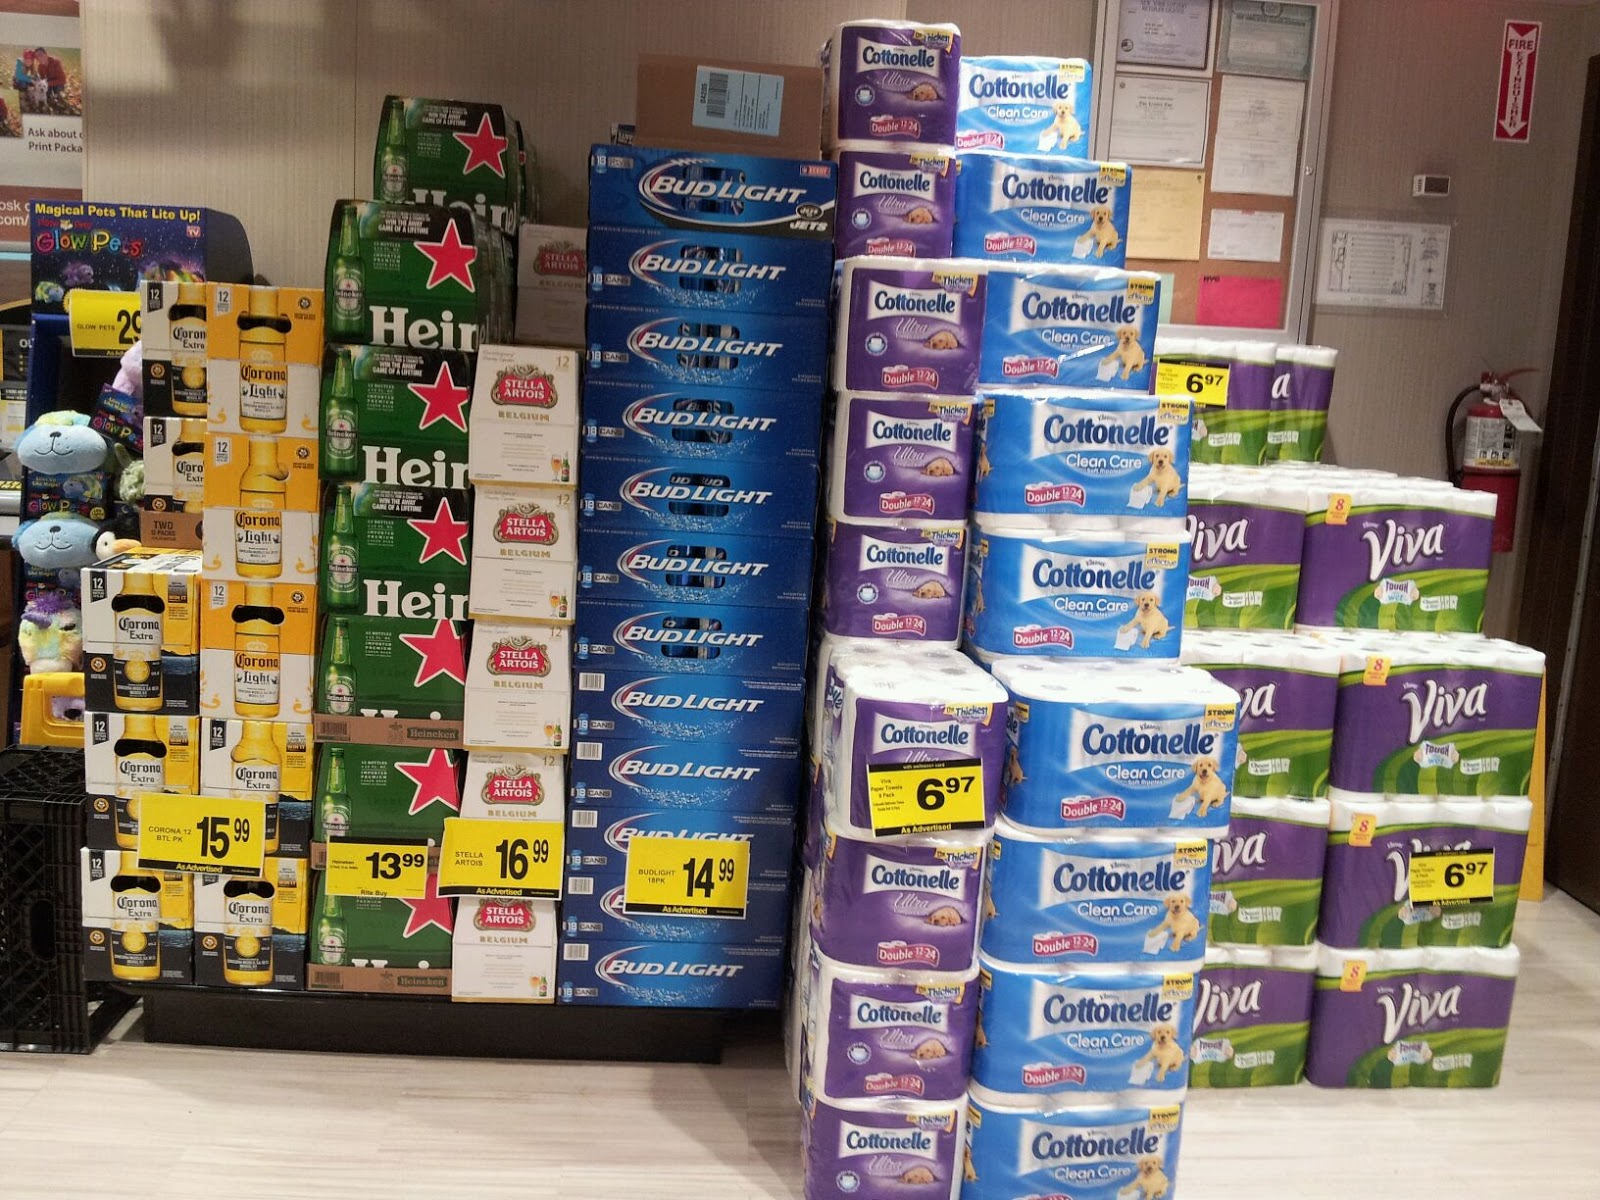 ev grieve rite aid replaces photo department with beer toilet paper displays. Black Bedroom Furniture Sets. Home Design Ideas